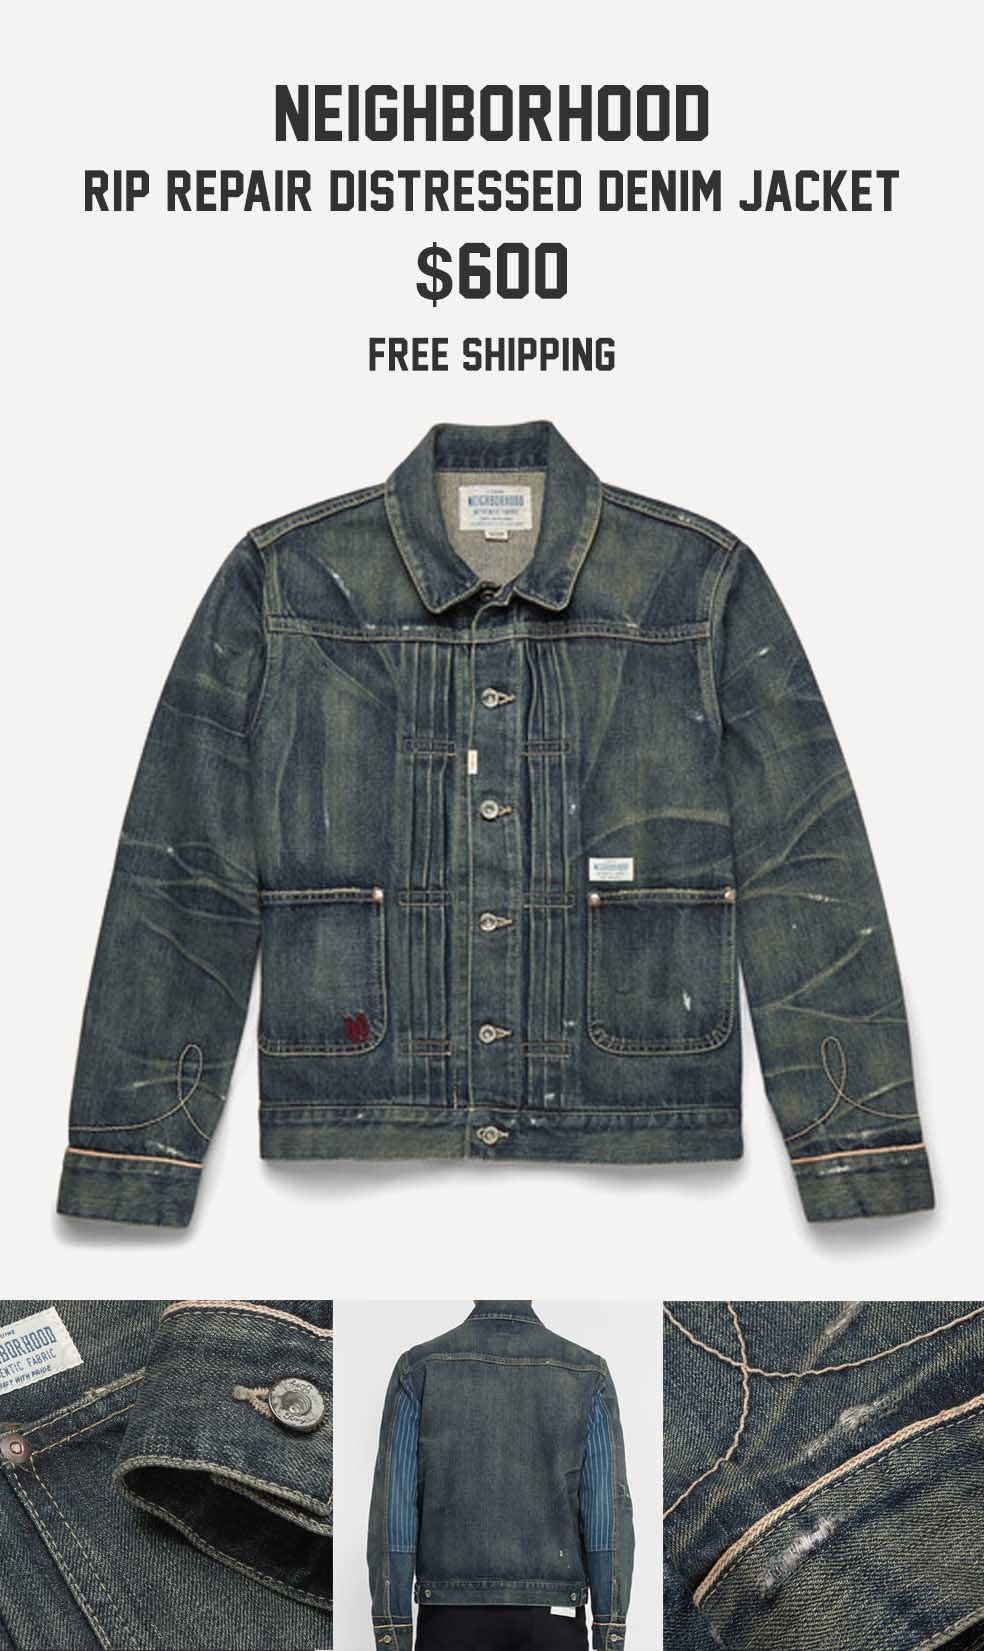 Stefan's Head - Fall Jackets Collection - Neighborhood Distressed Denim Jacket